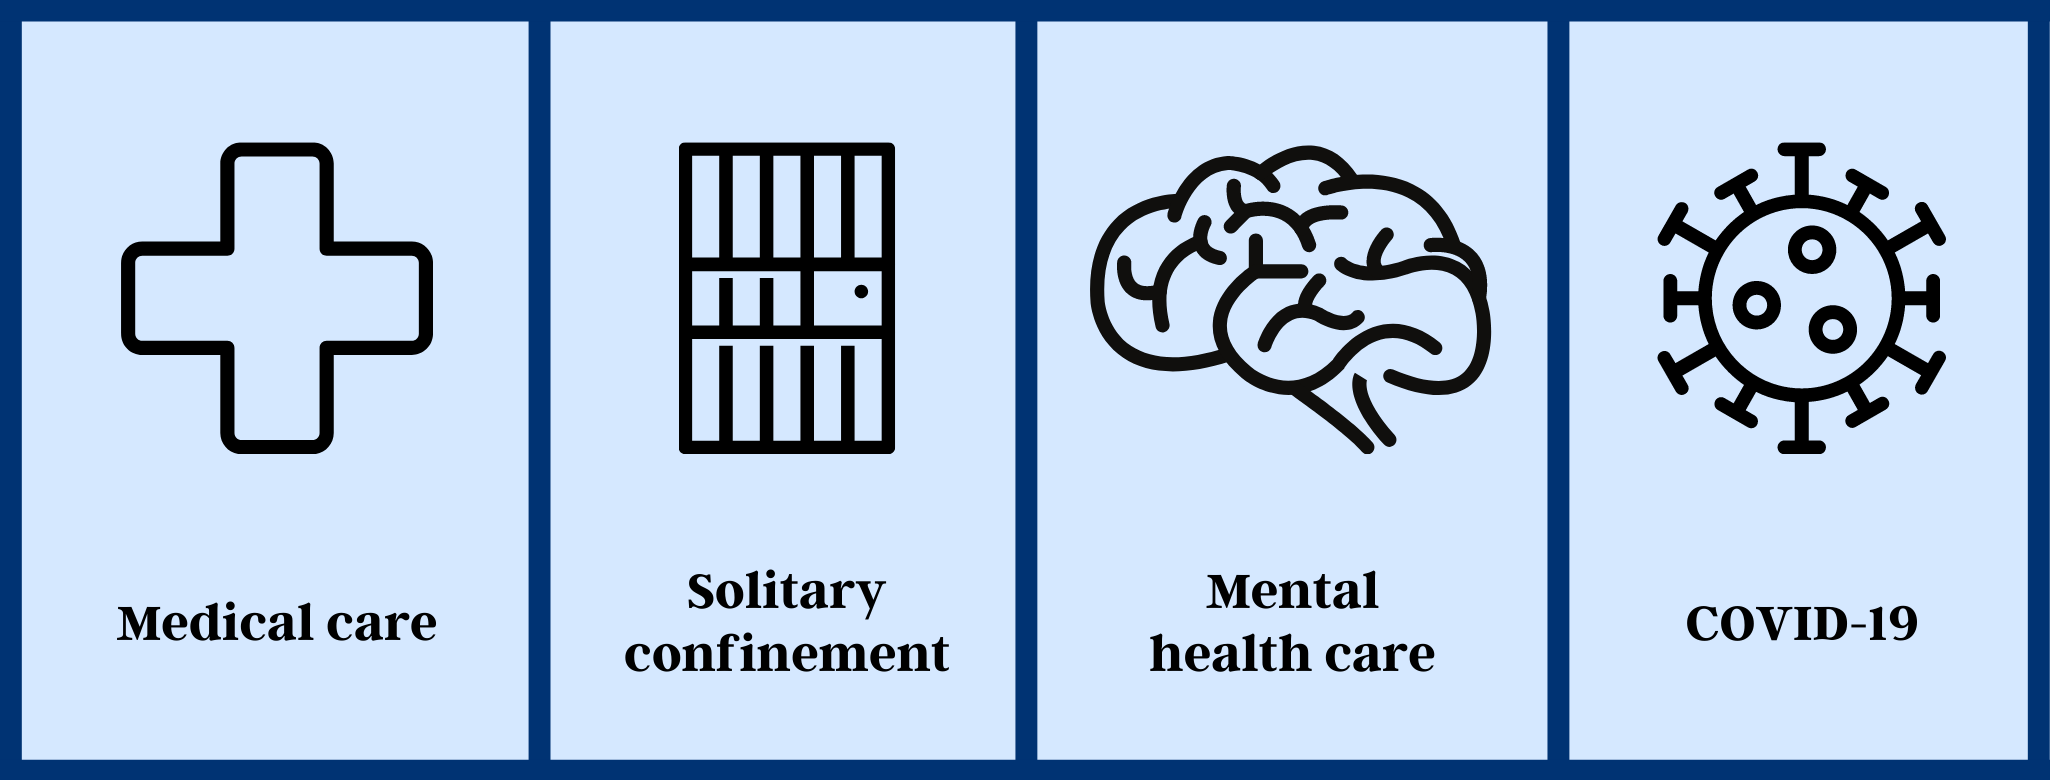 medical care, solitary confinement, mental health care, COVID-19